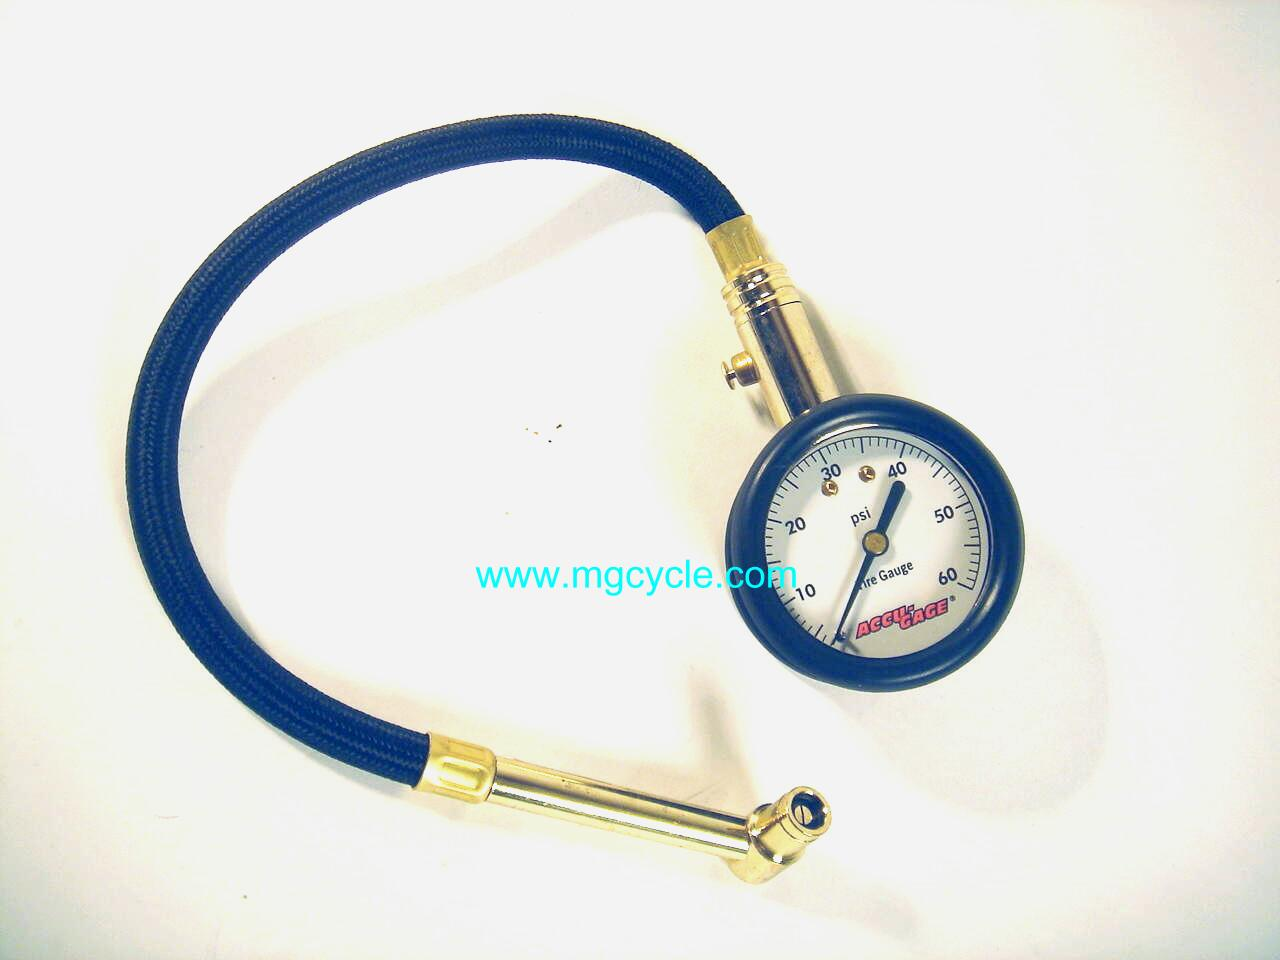 Accu-Gage tire pressure gauge, 0-60psi,